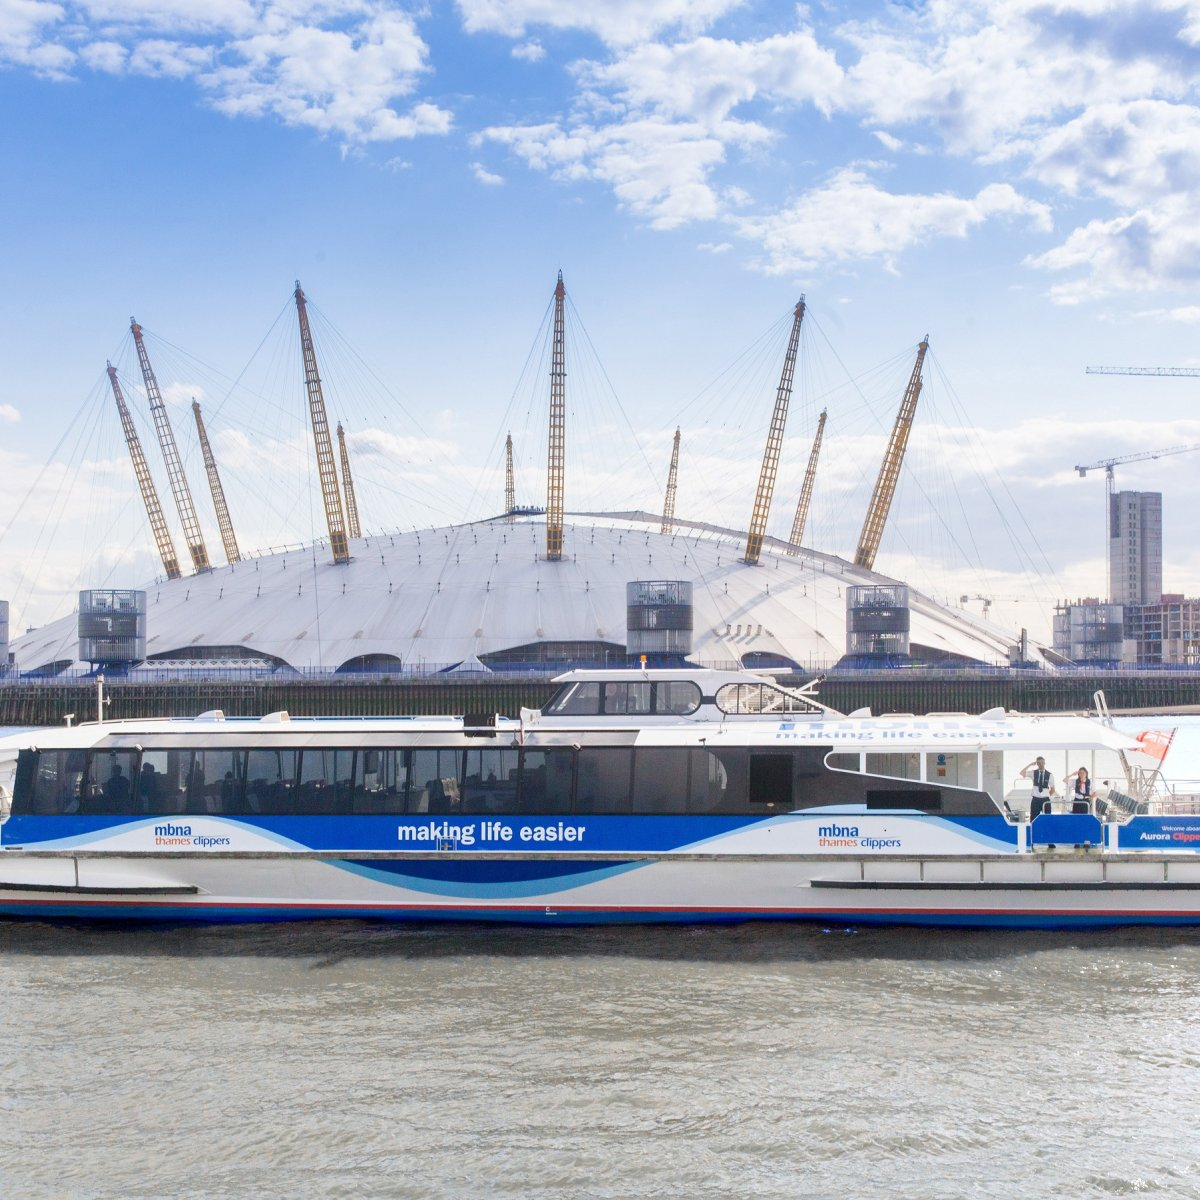 Exterior image of the MBNA Thames Clipper on the water with The O2 in the background